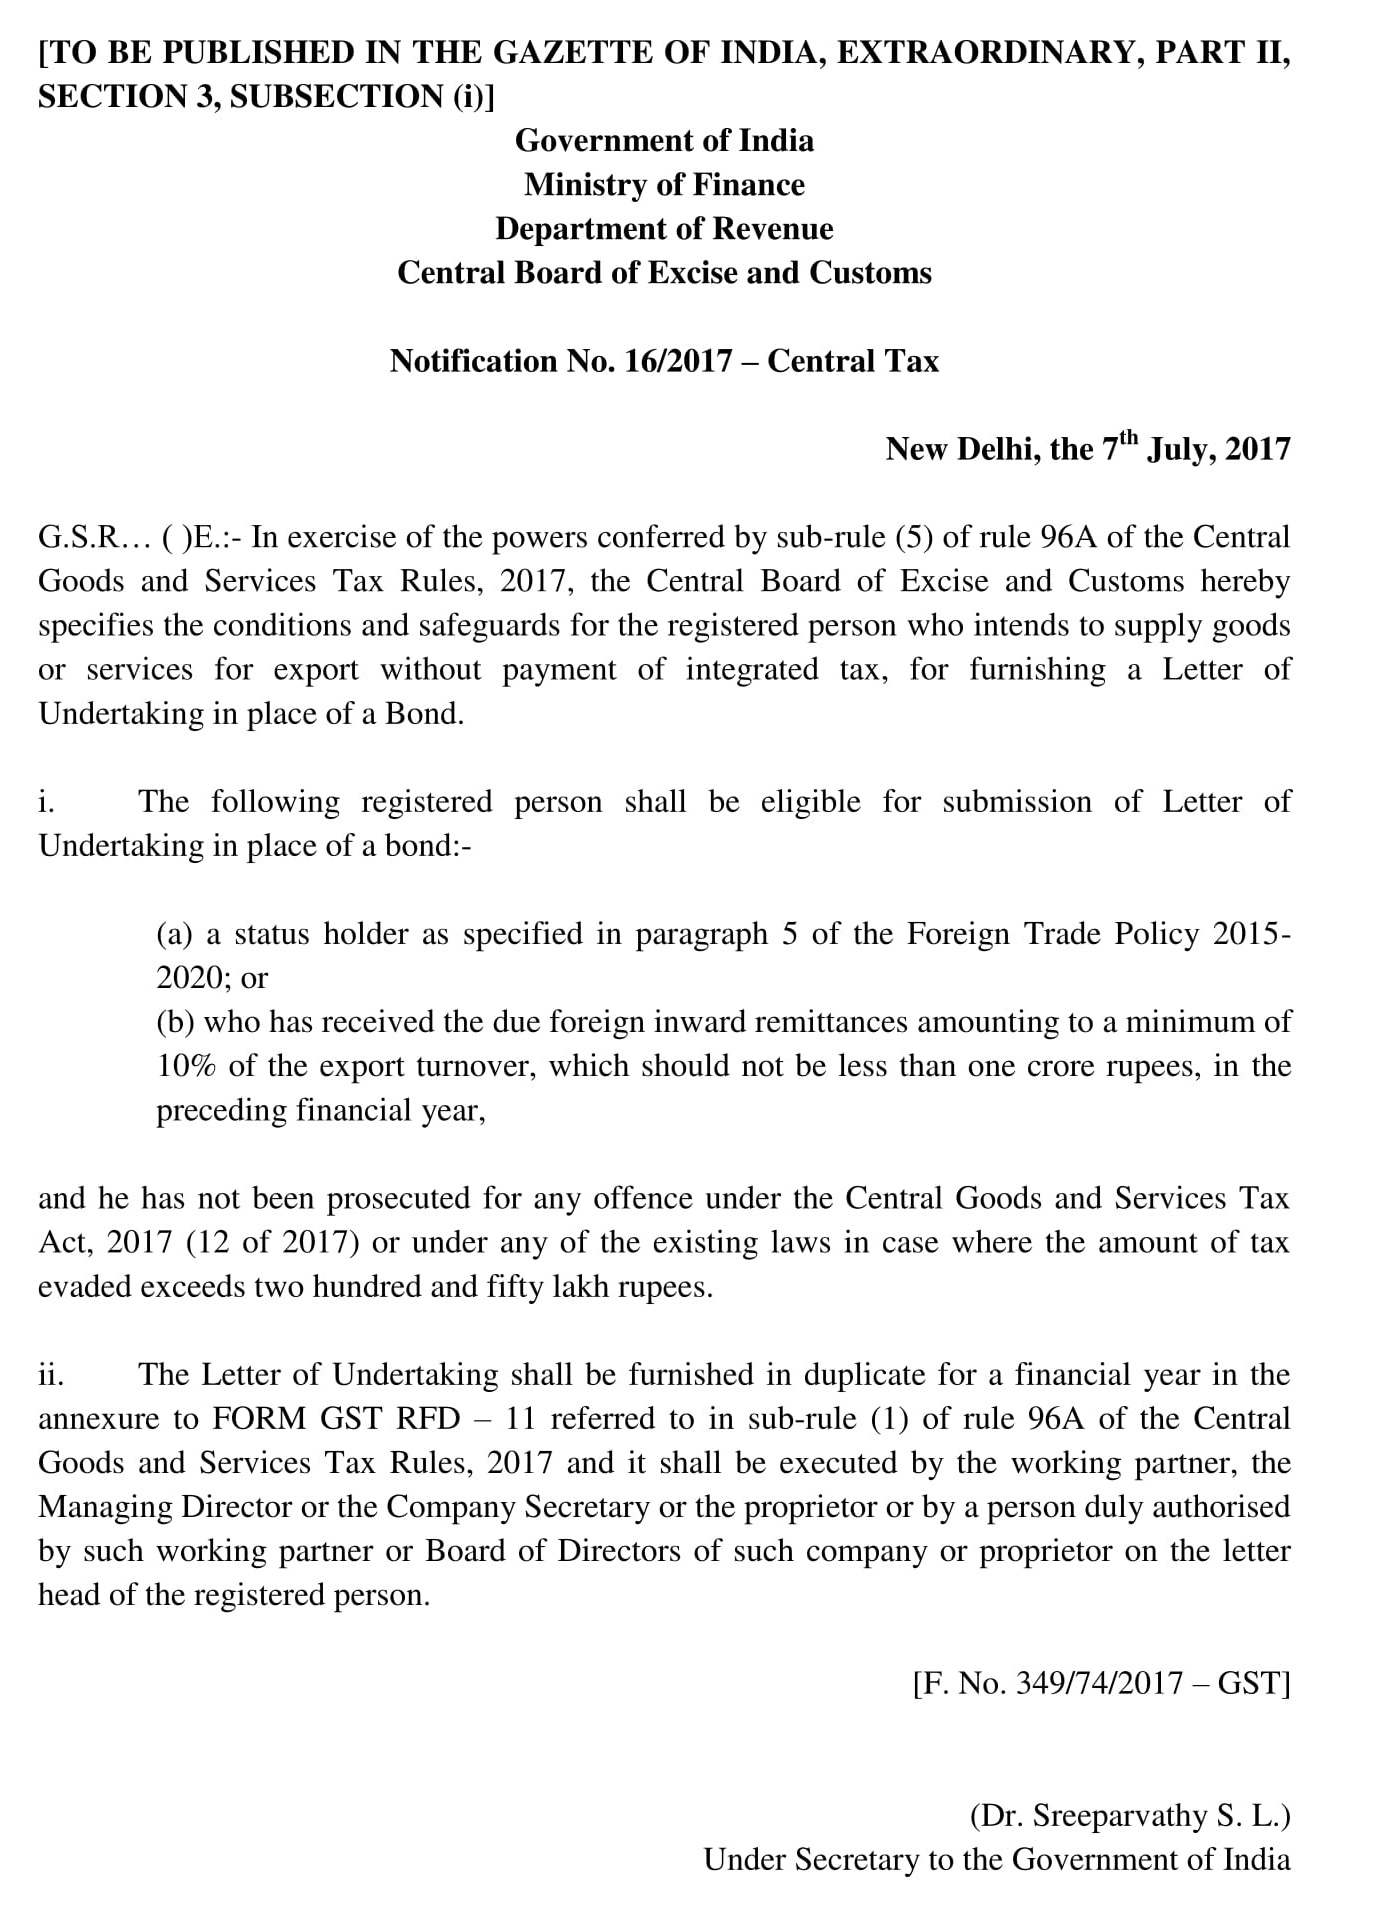 notfctn-16-central-tax-english-1.jpg